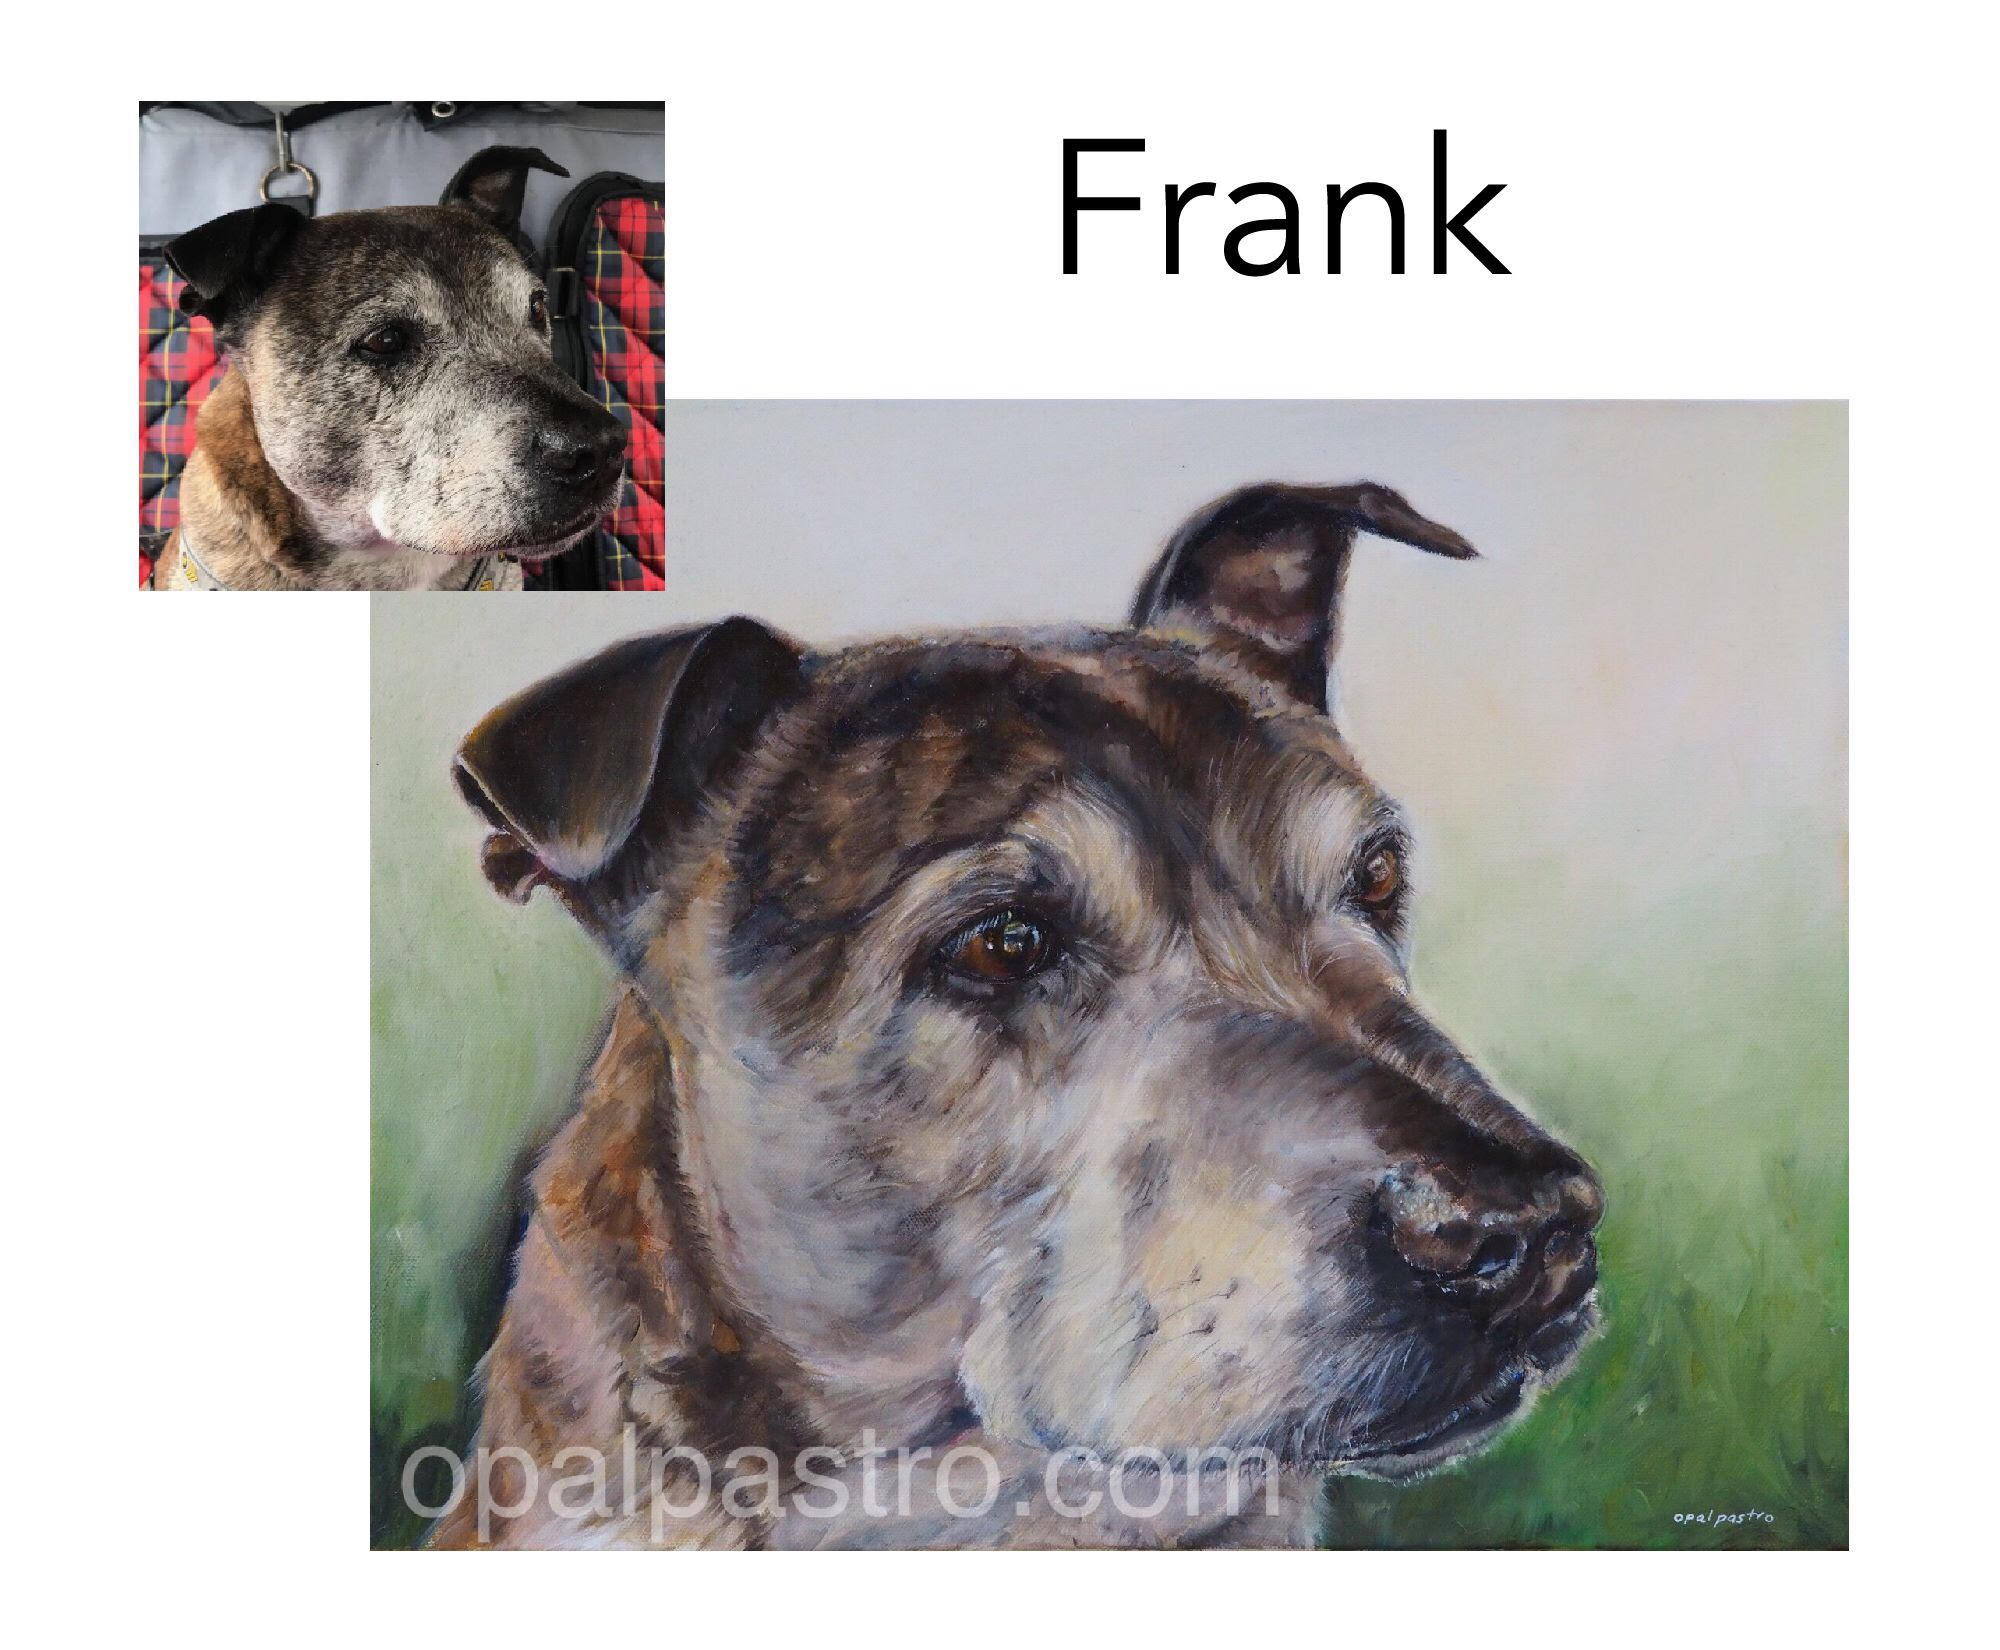 "English Staffy - Acrylic and oil on Canvas, 14"" x 18"" (35.5cm x 45.72cm)Private memorial portraitBellingen, NSW—————————————-Frank had a great life and a loved life. His mission in life was to created mayhem and madness- even so, he is a very dearly missed member of his family. His memorial portrait was commissioned as a loving tribute to a dog who lives on in the hearts of those who loved him."